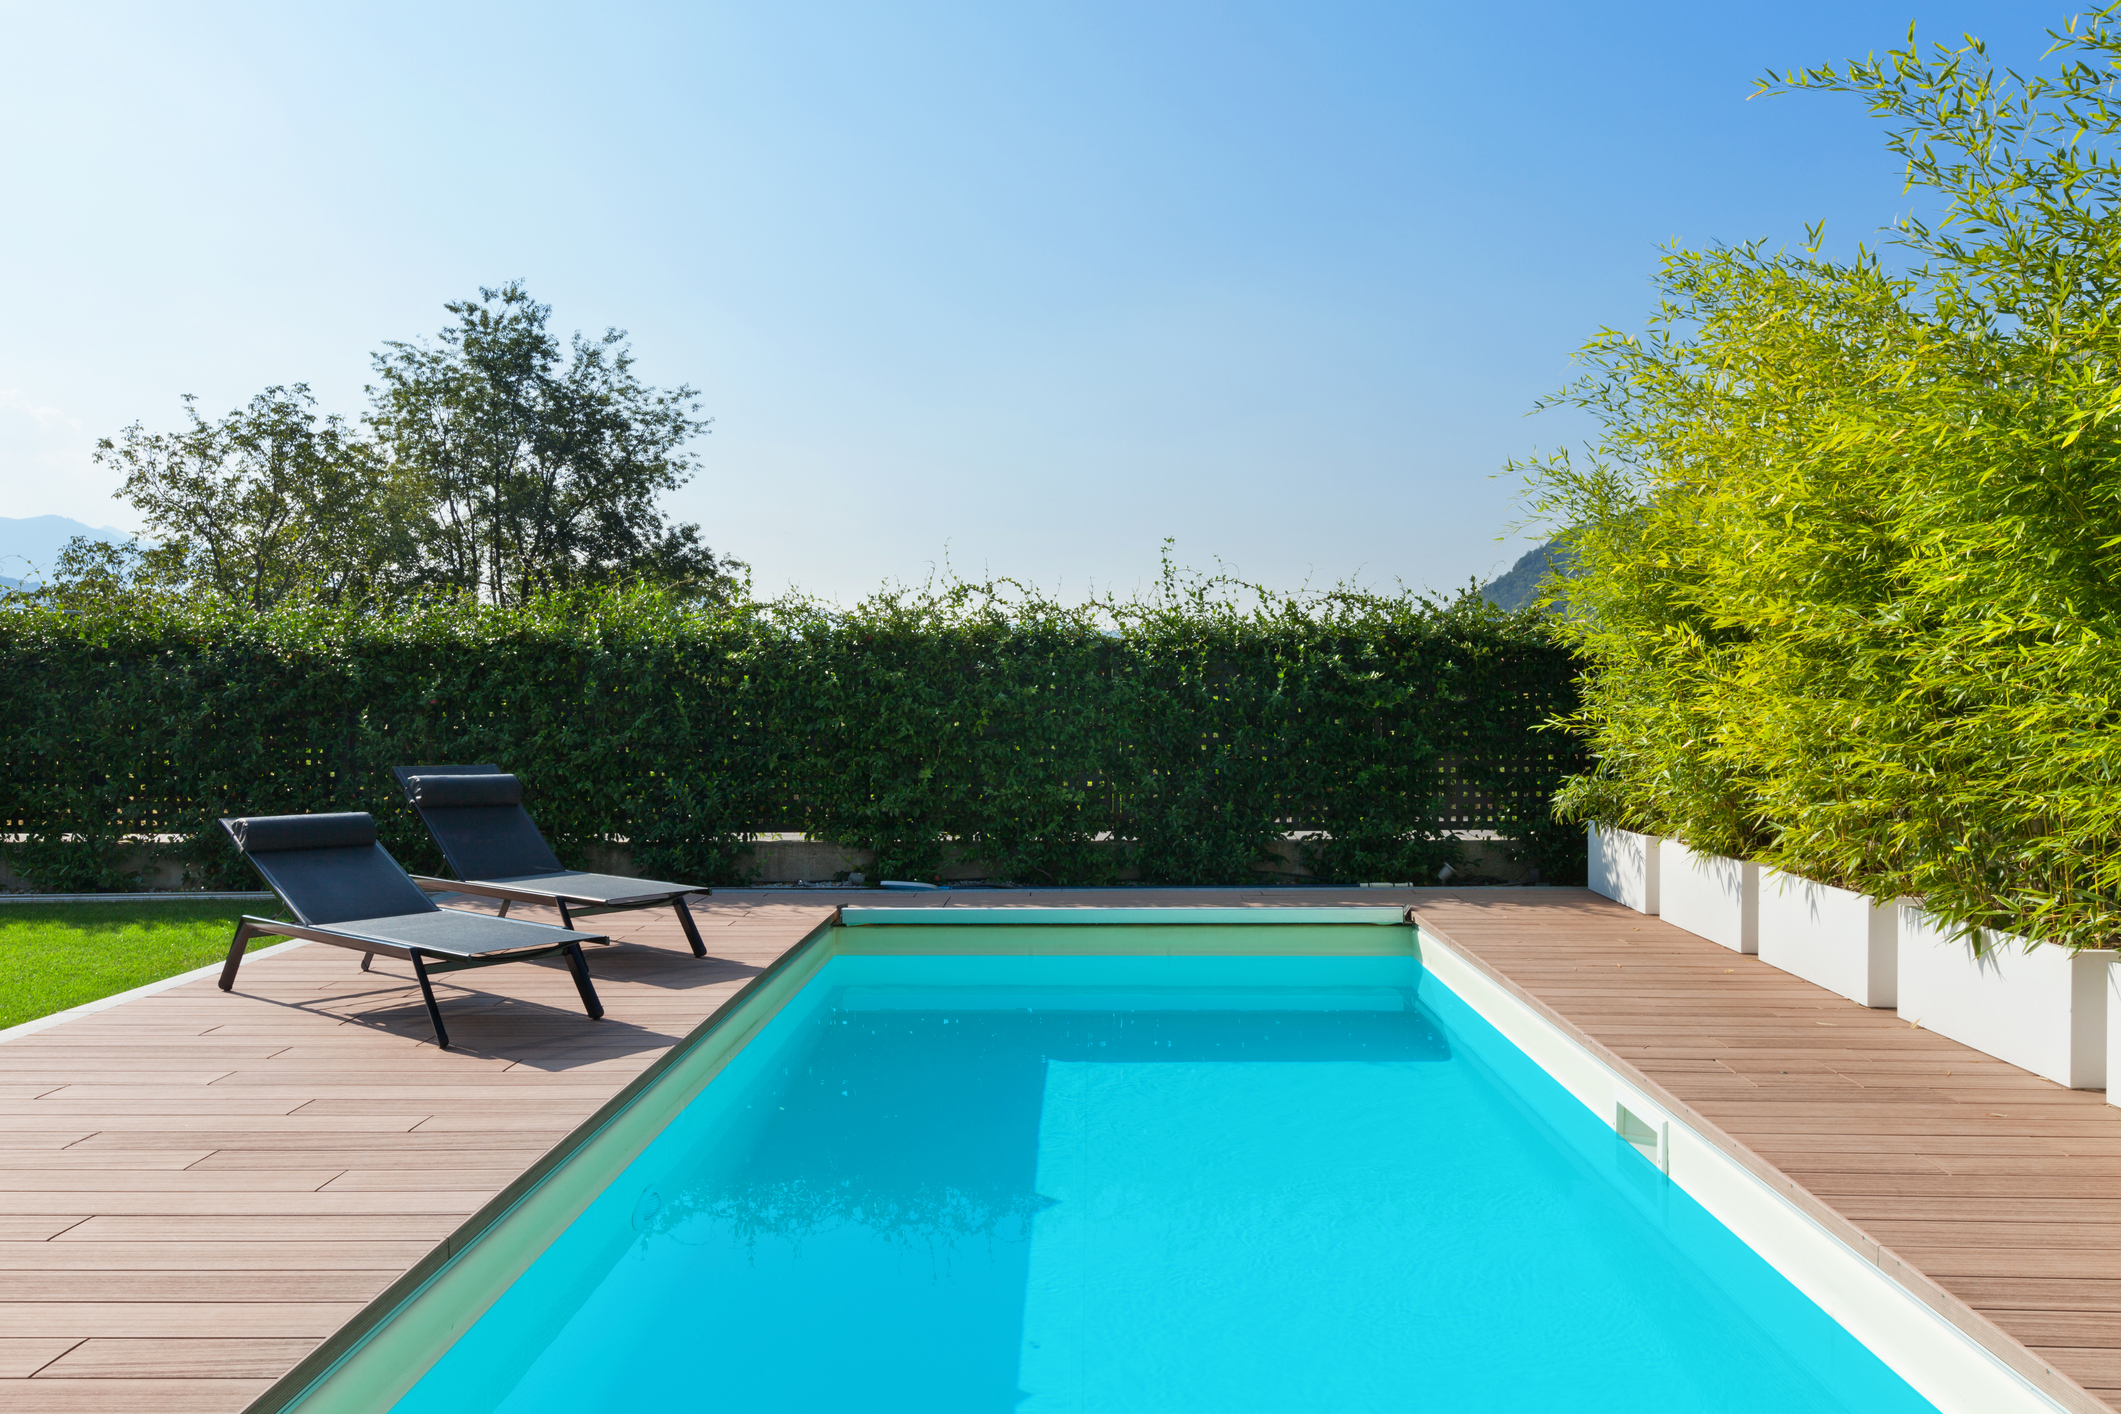 Tips for protecting your pool -